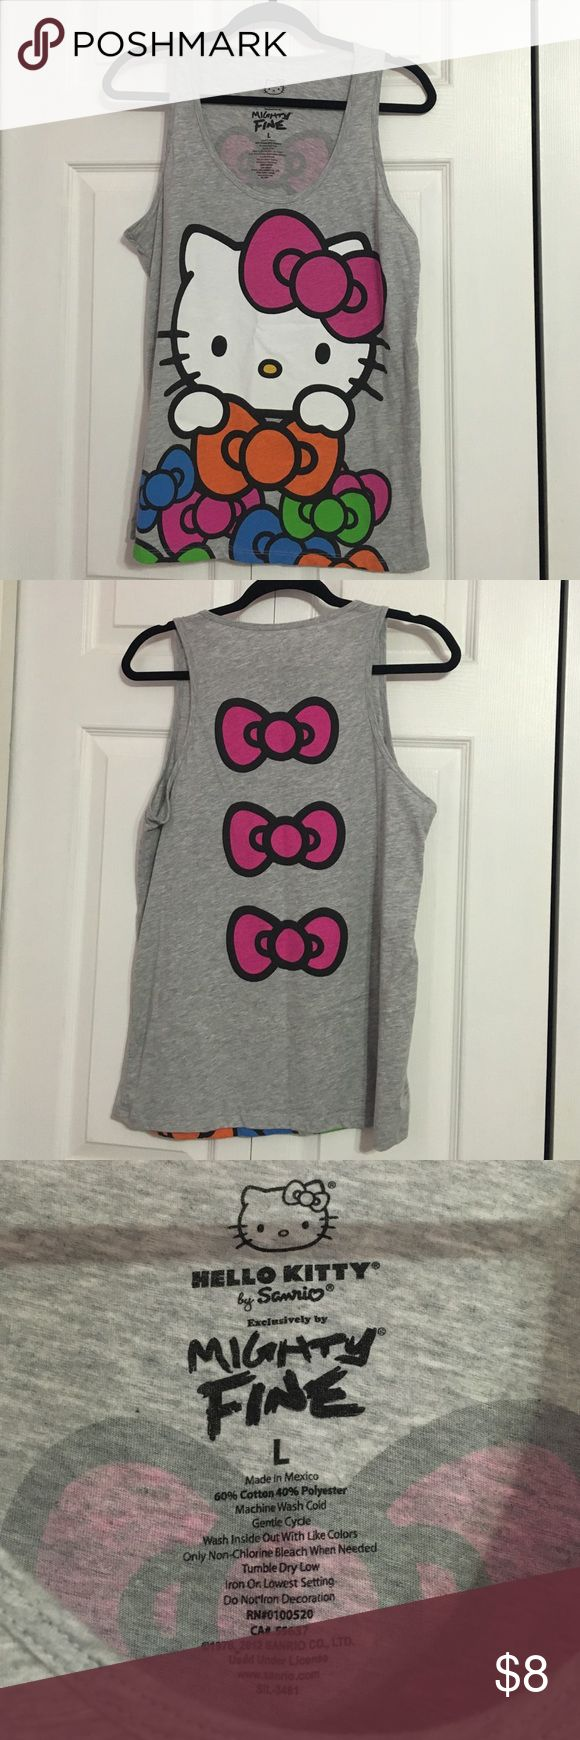 Hello Kitty Bow Tank Top Super cute Hello Kitty bow tank top! Has adorable bow details on back. Worn a few times. Mighty Fine Tops Tank Tops